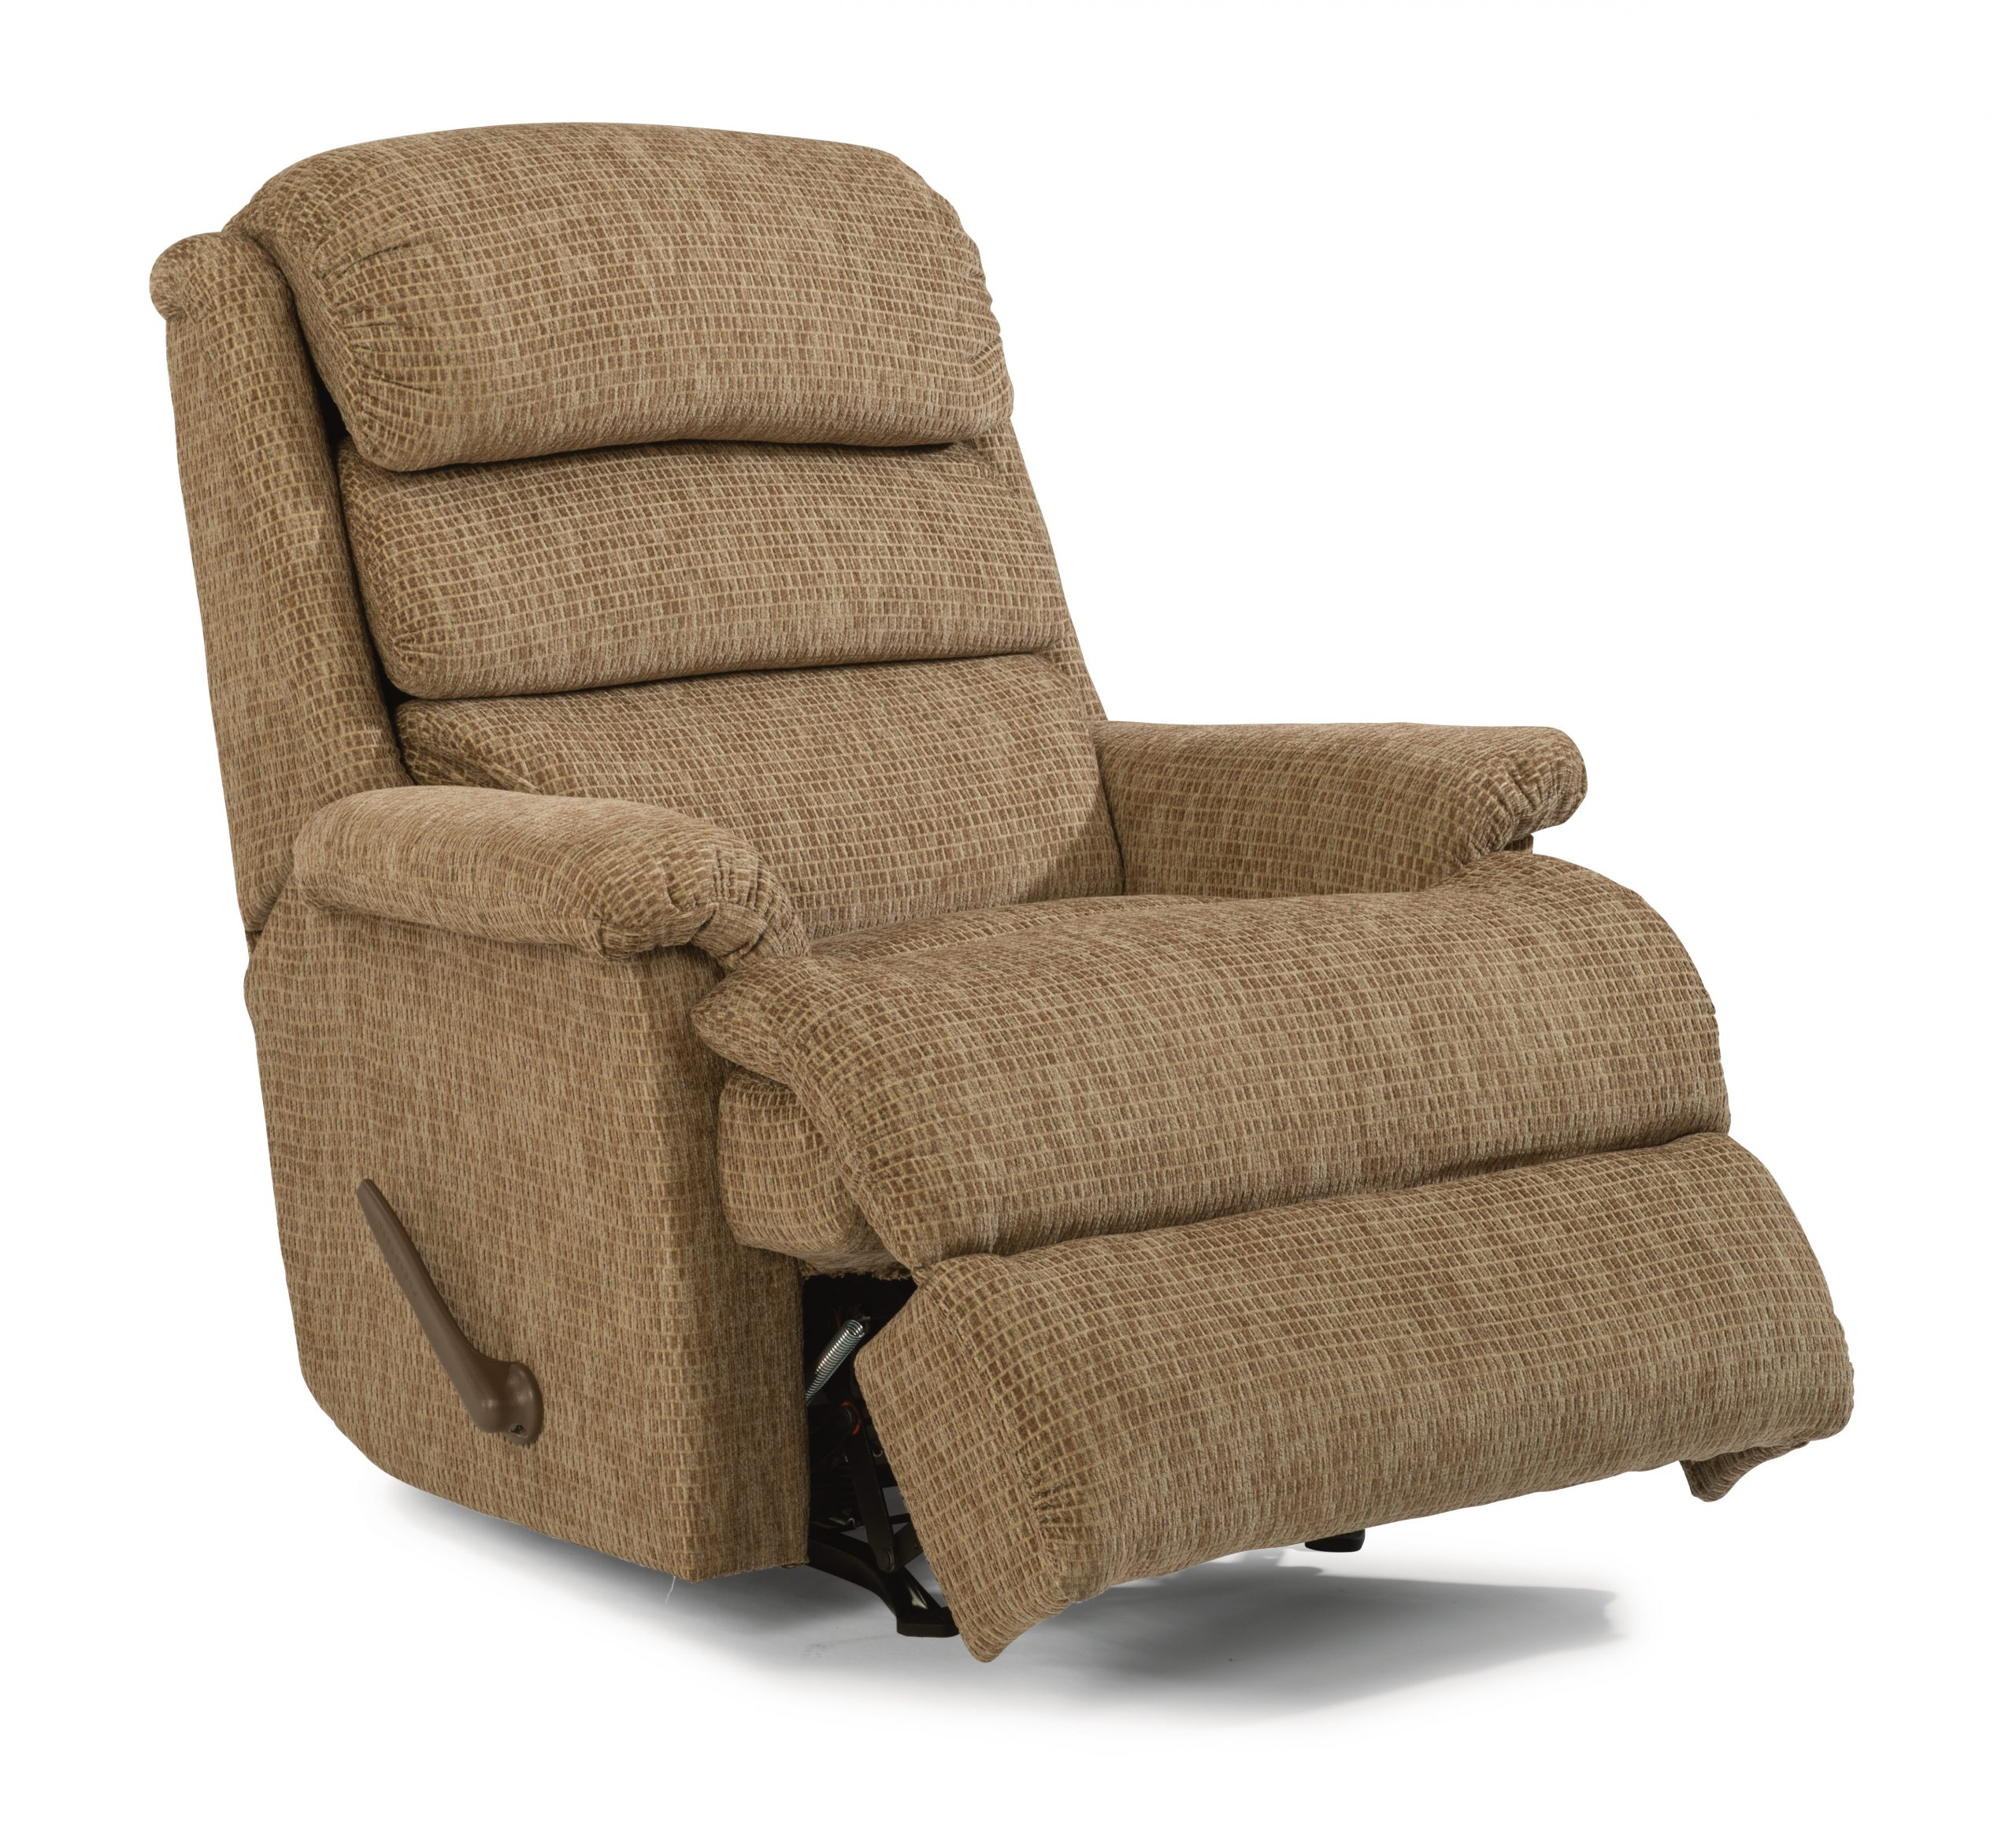 Flexsteel Yukon Big and Tall Rocker Recliner (Recliners)